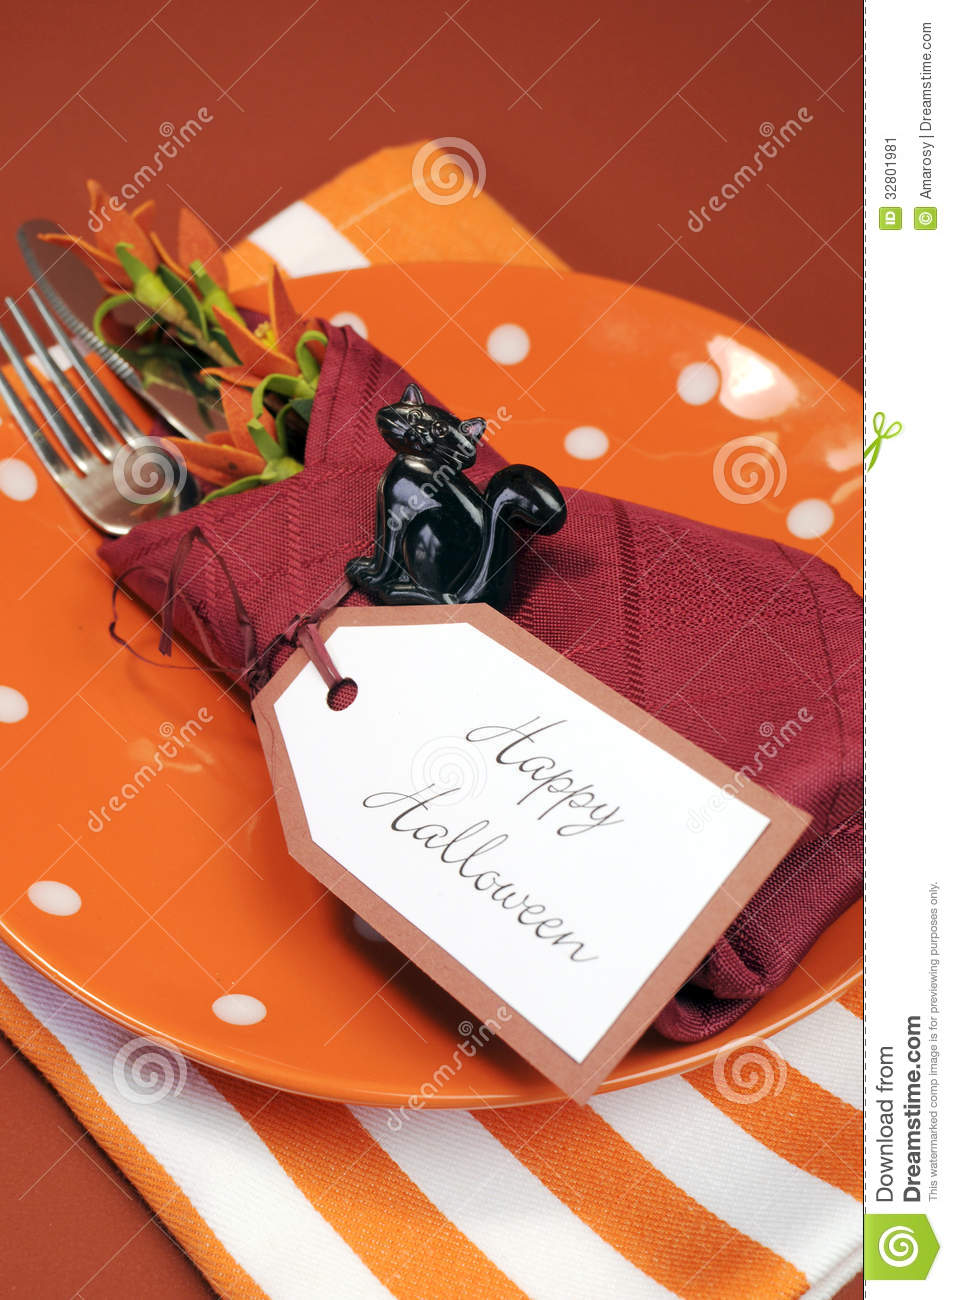 Serviette De Table Halloween Couvert Heureux De Table De Halloween Avec Le Plat Orange De